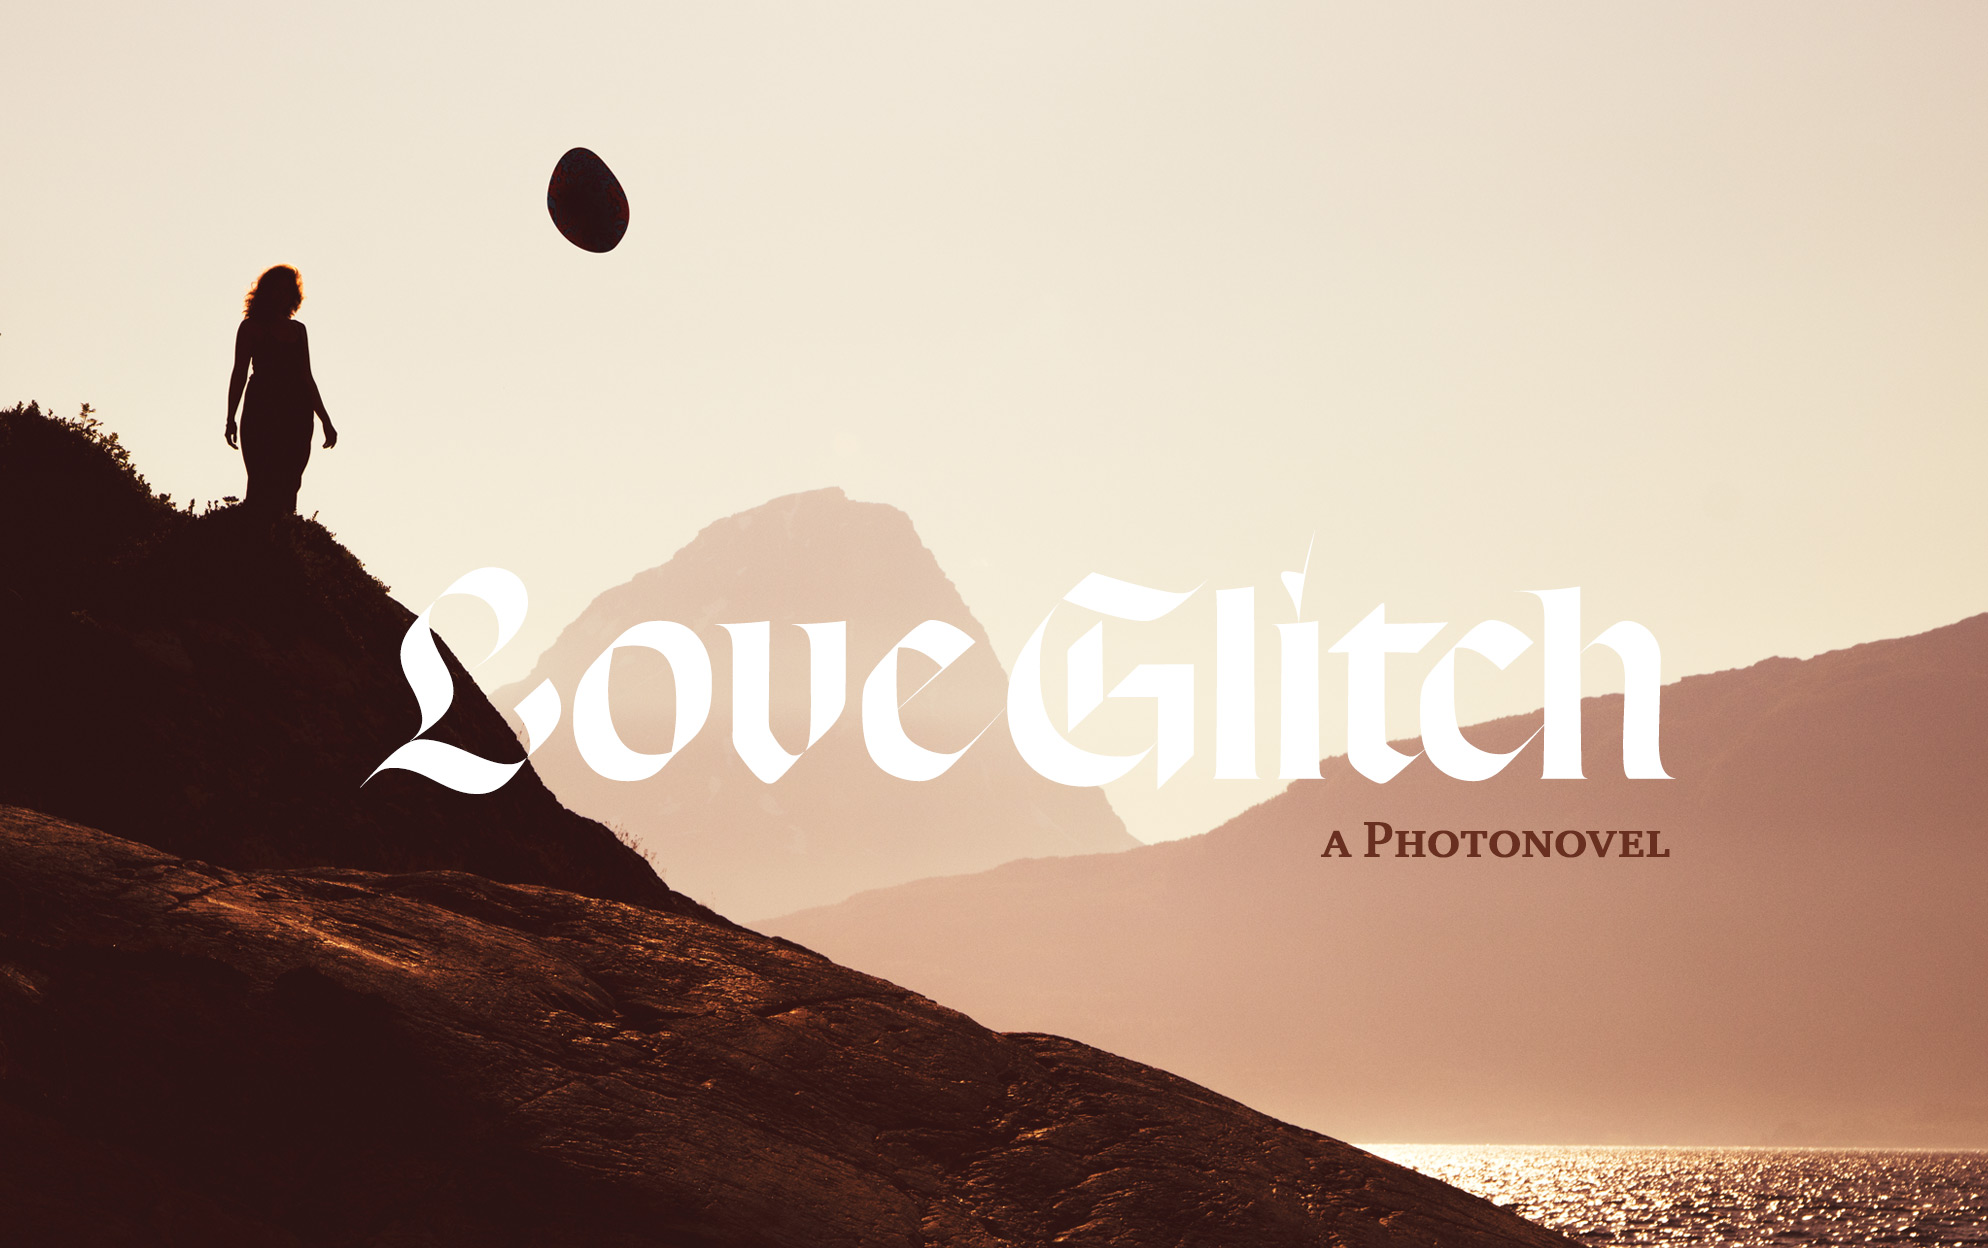 LoveGlitch Photonovel